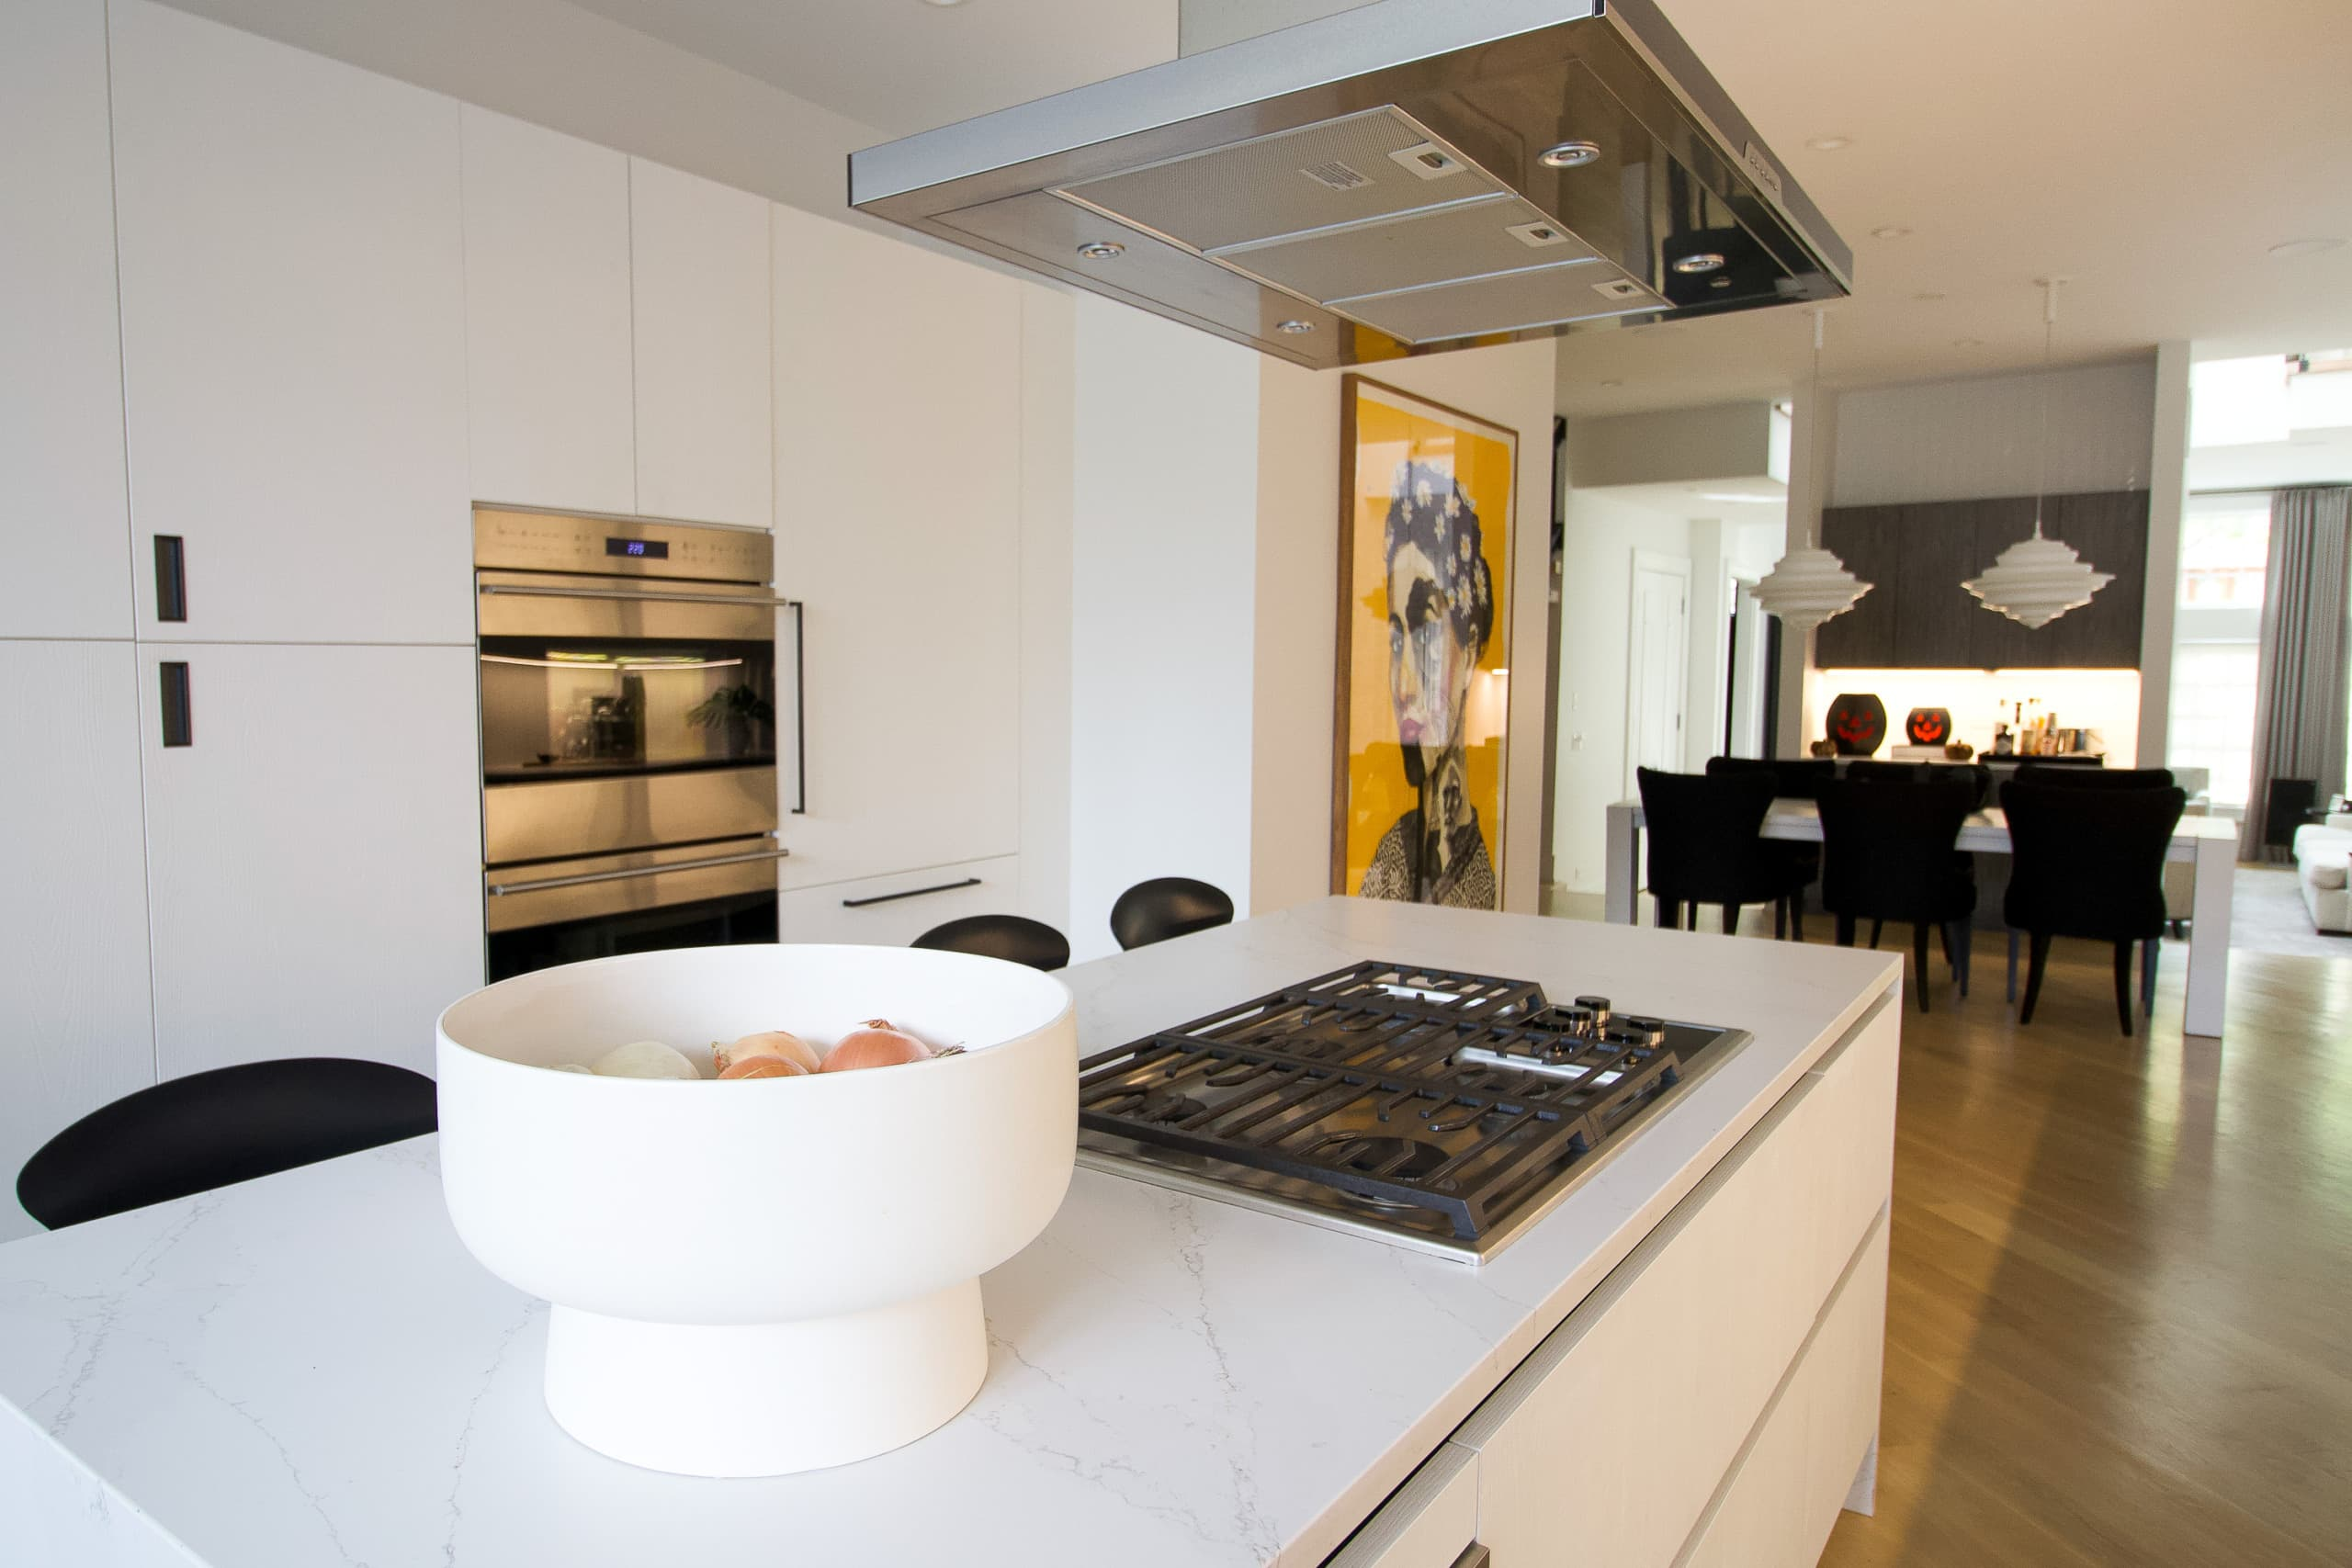 Range in the island in this modern home